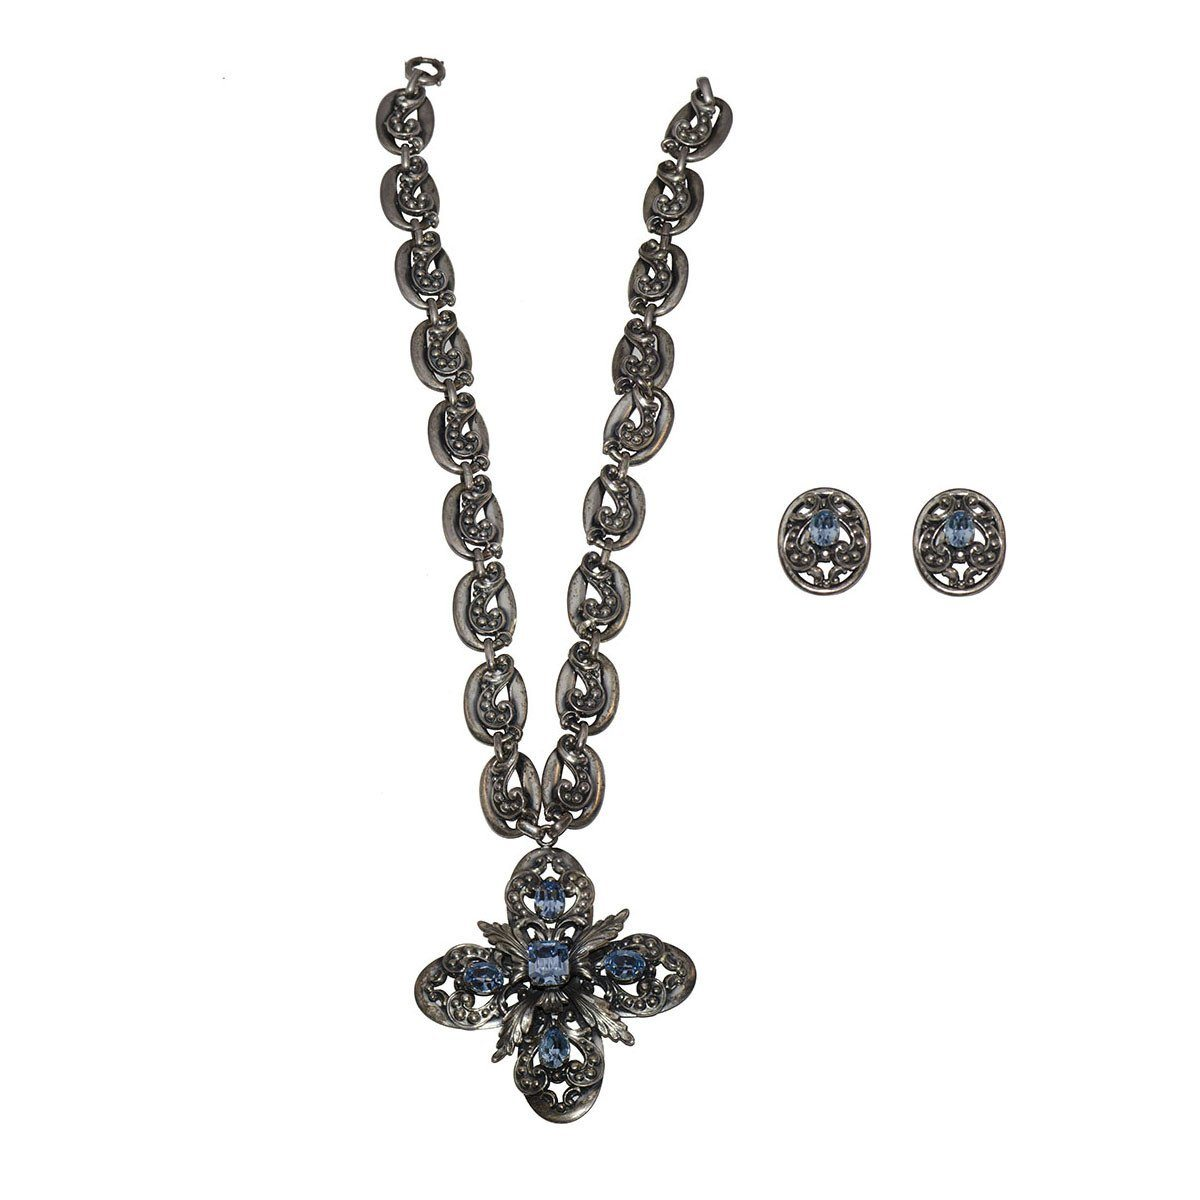 1950s Napier Silver Plate Pendant Necklace & Earrings Set, Maltese Cross